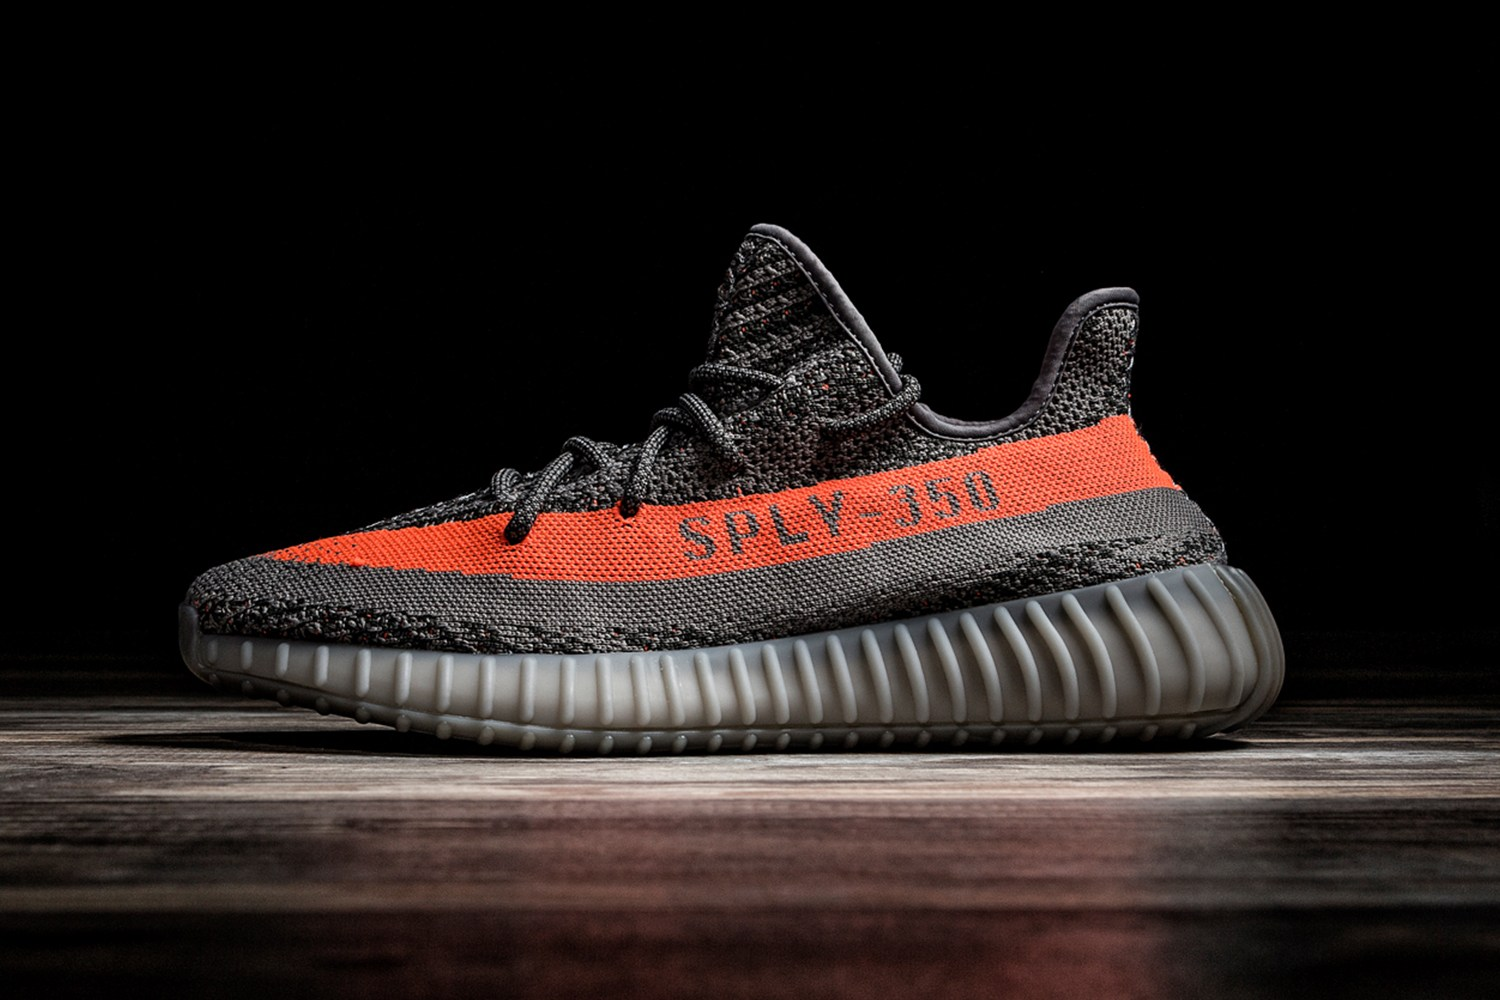 yeezy-350-v2-closer-look-3